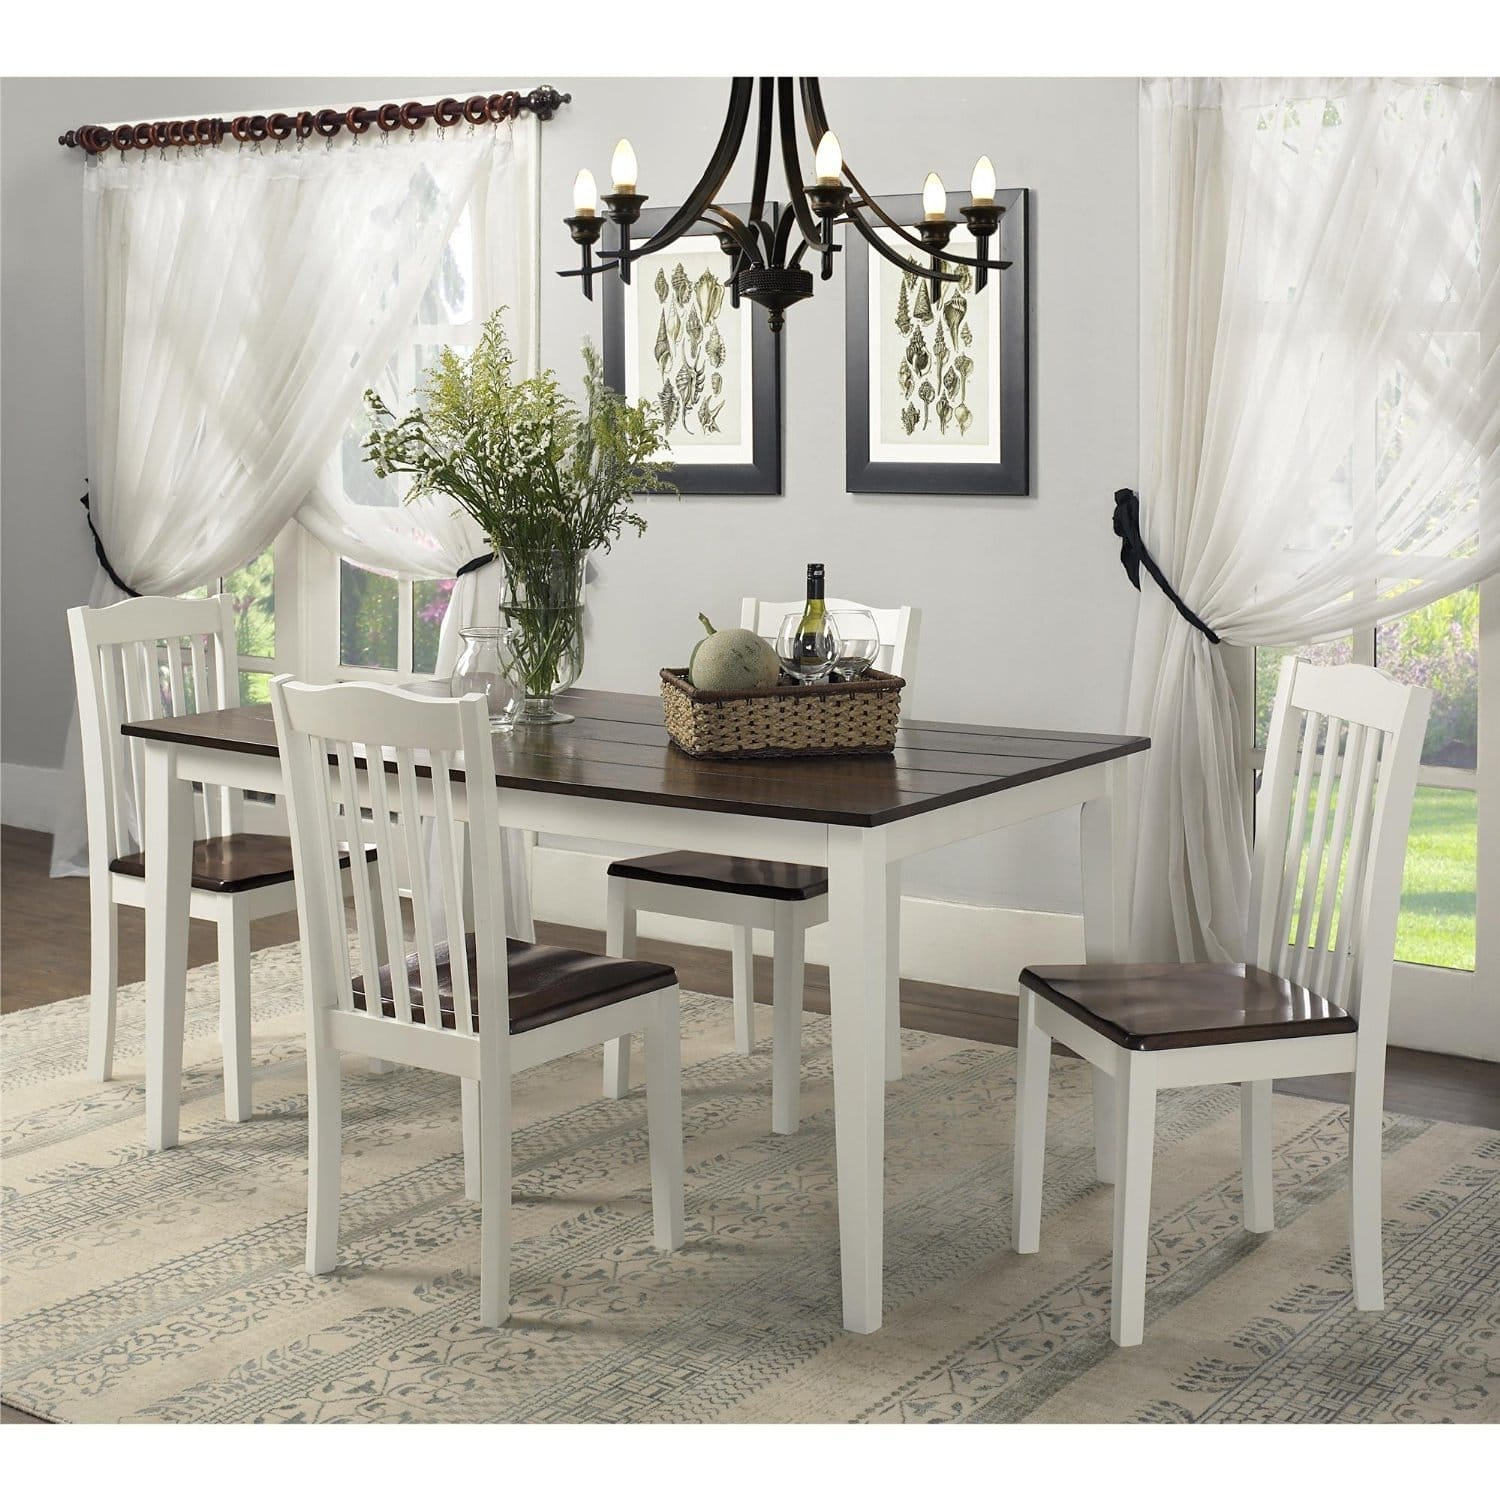 farmhouse dining set_16